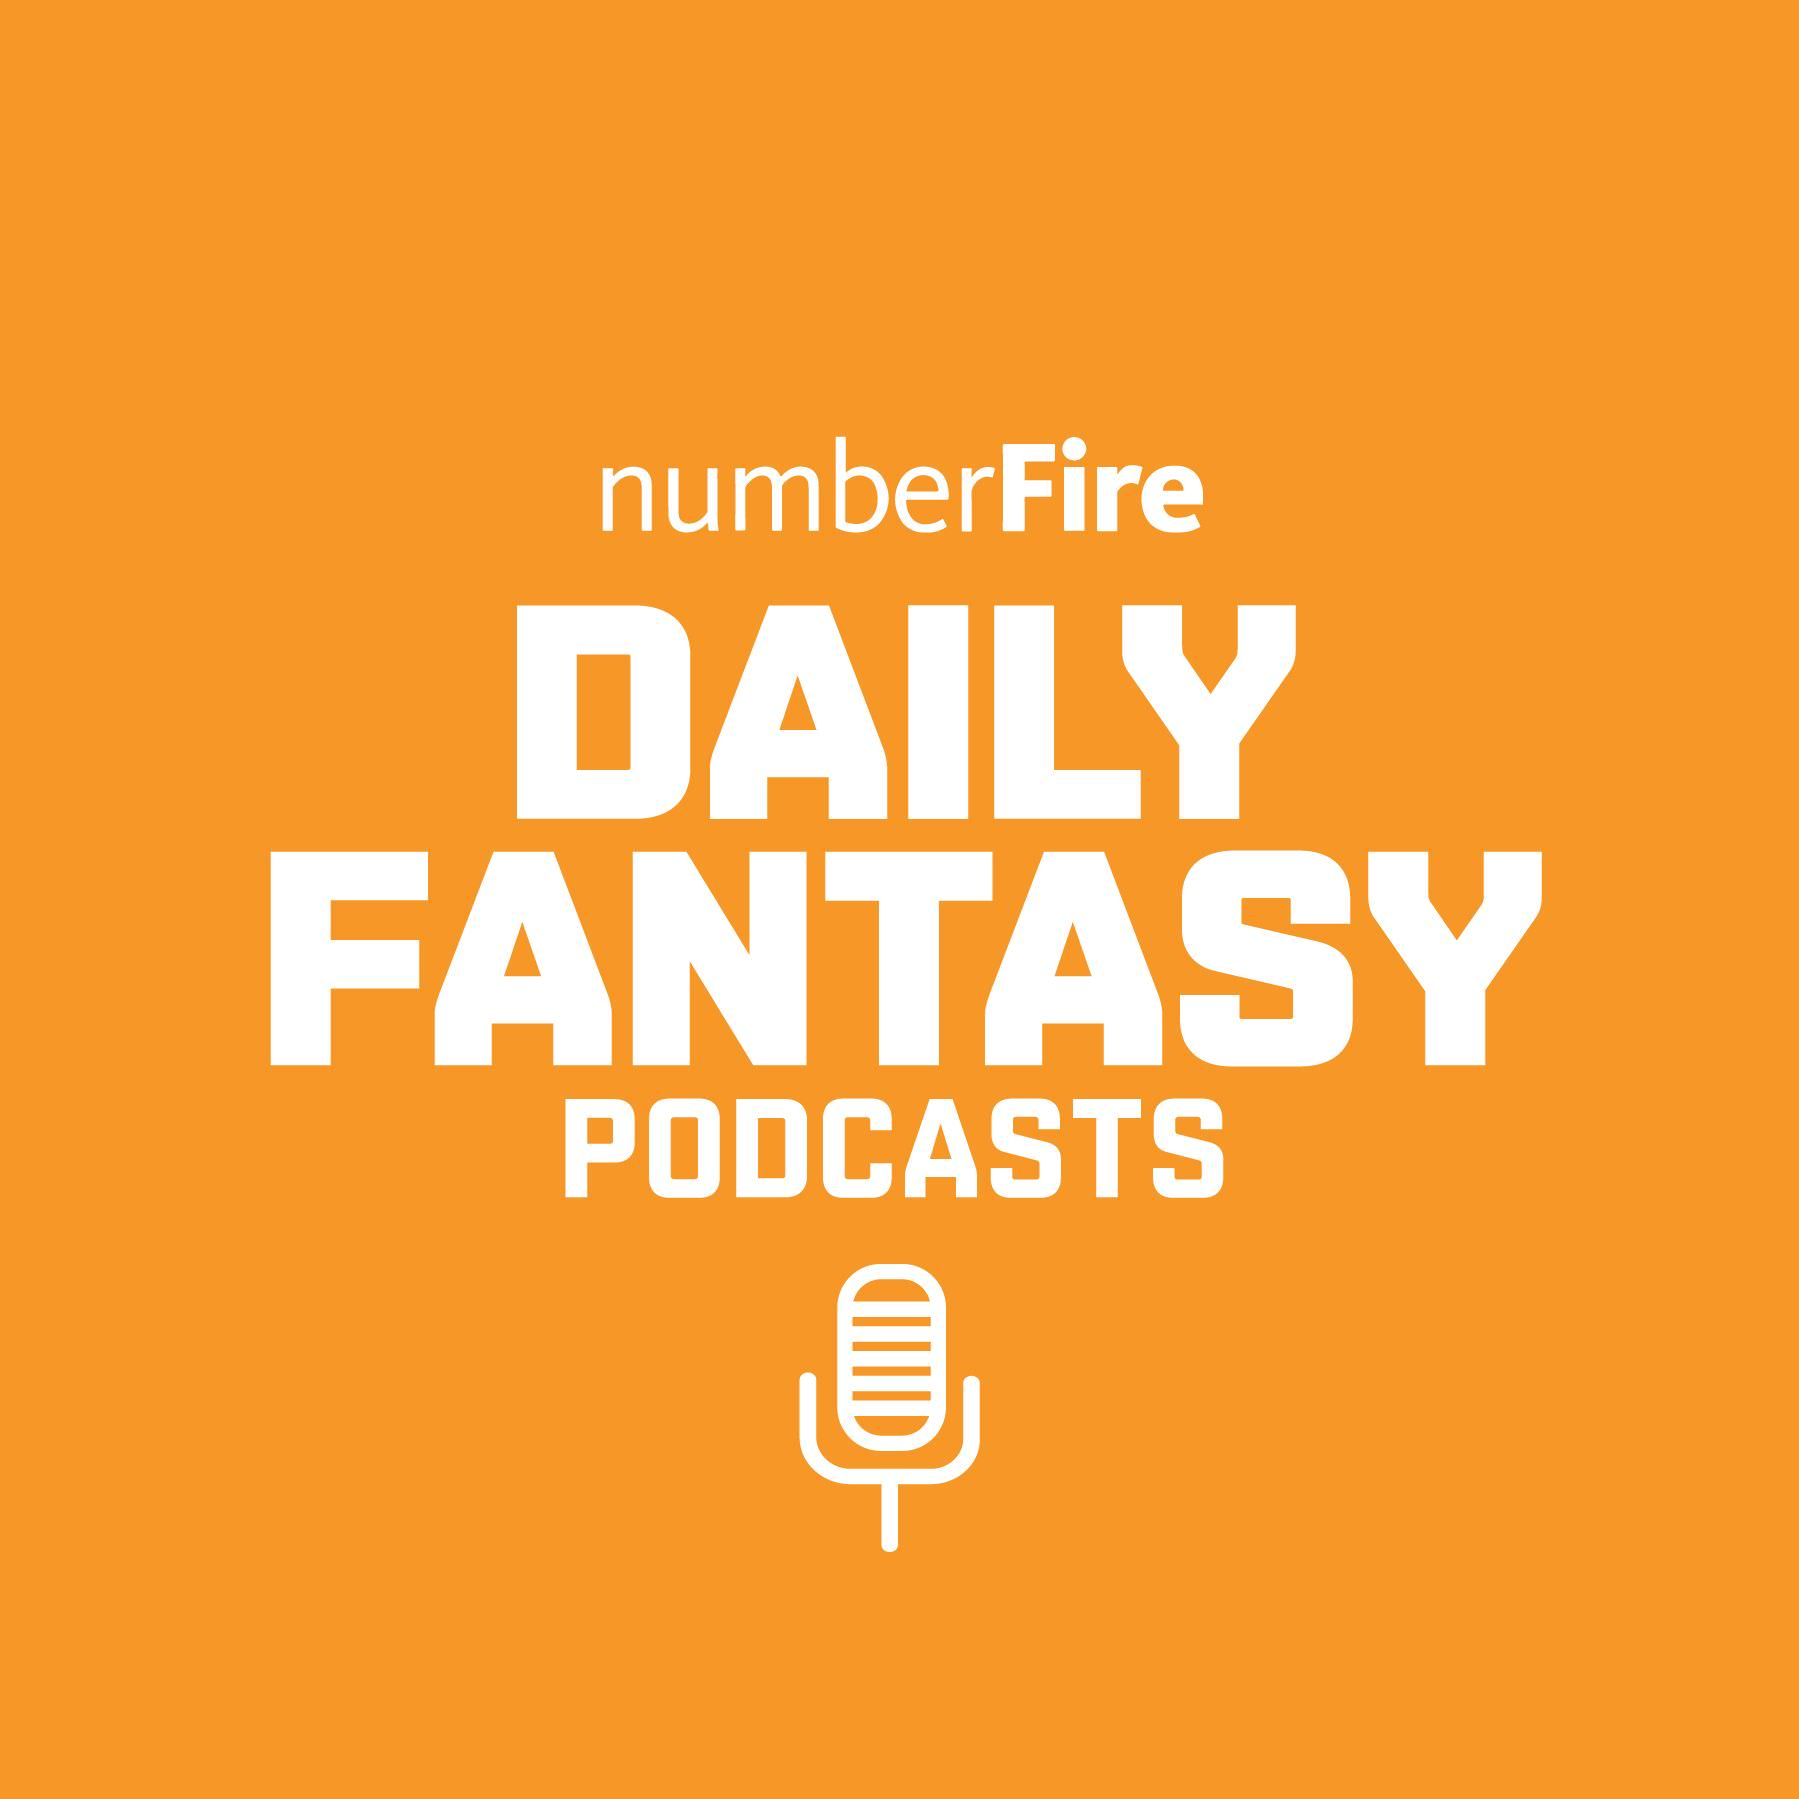 numberFire Daily Fantasy Podcasts show art